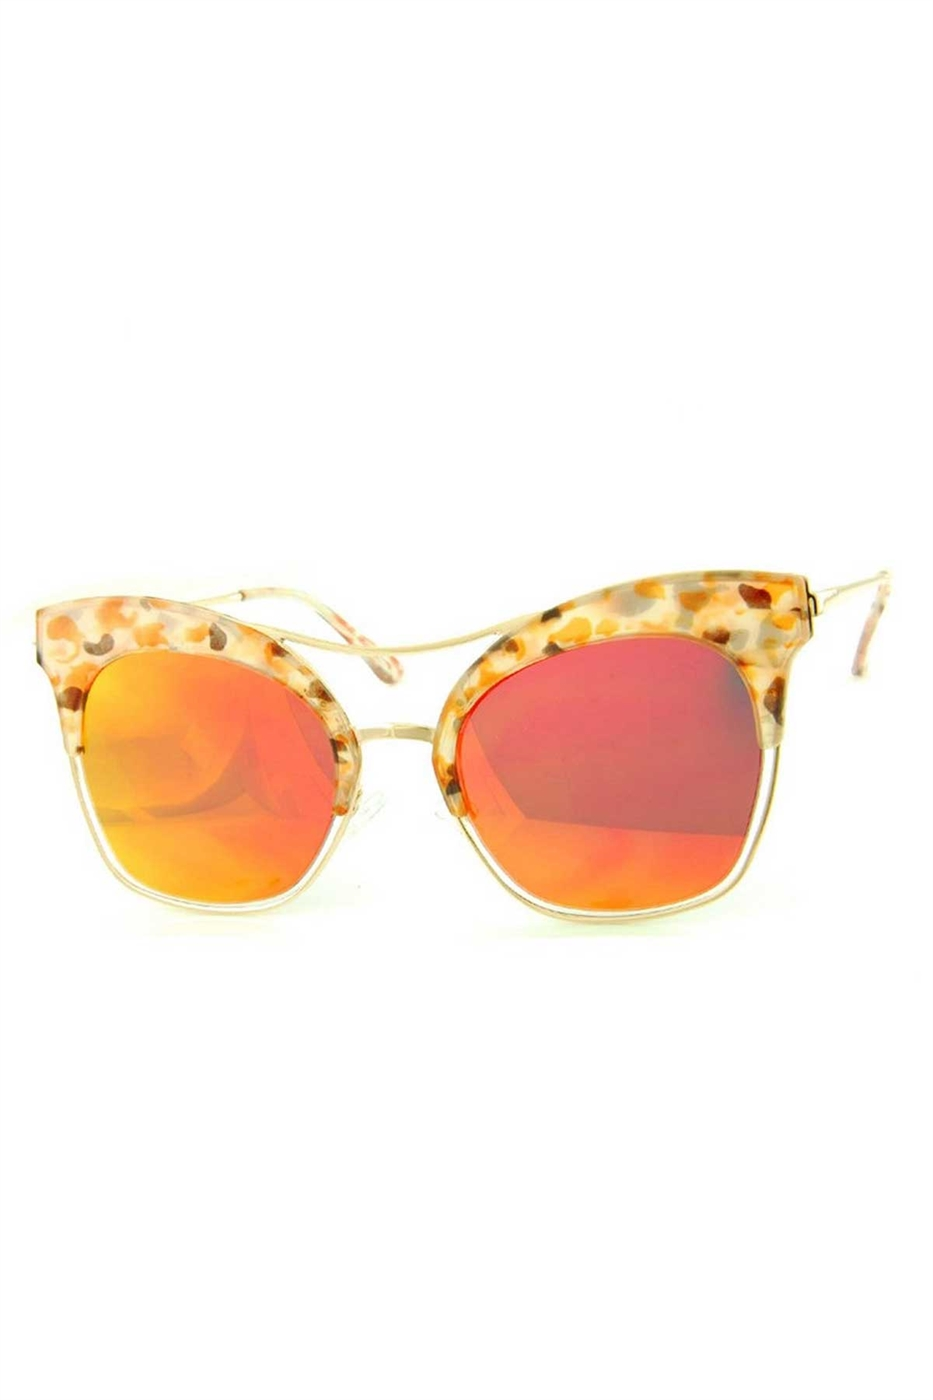 CAT EYE SUNGLASSES - orangeshine.com